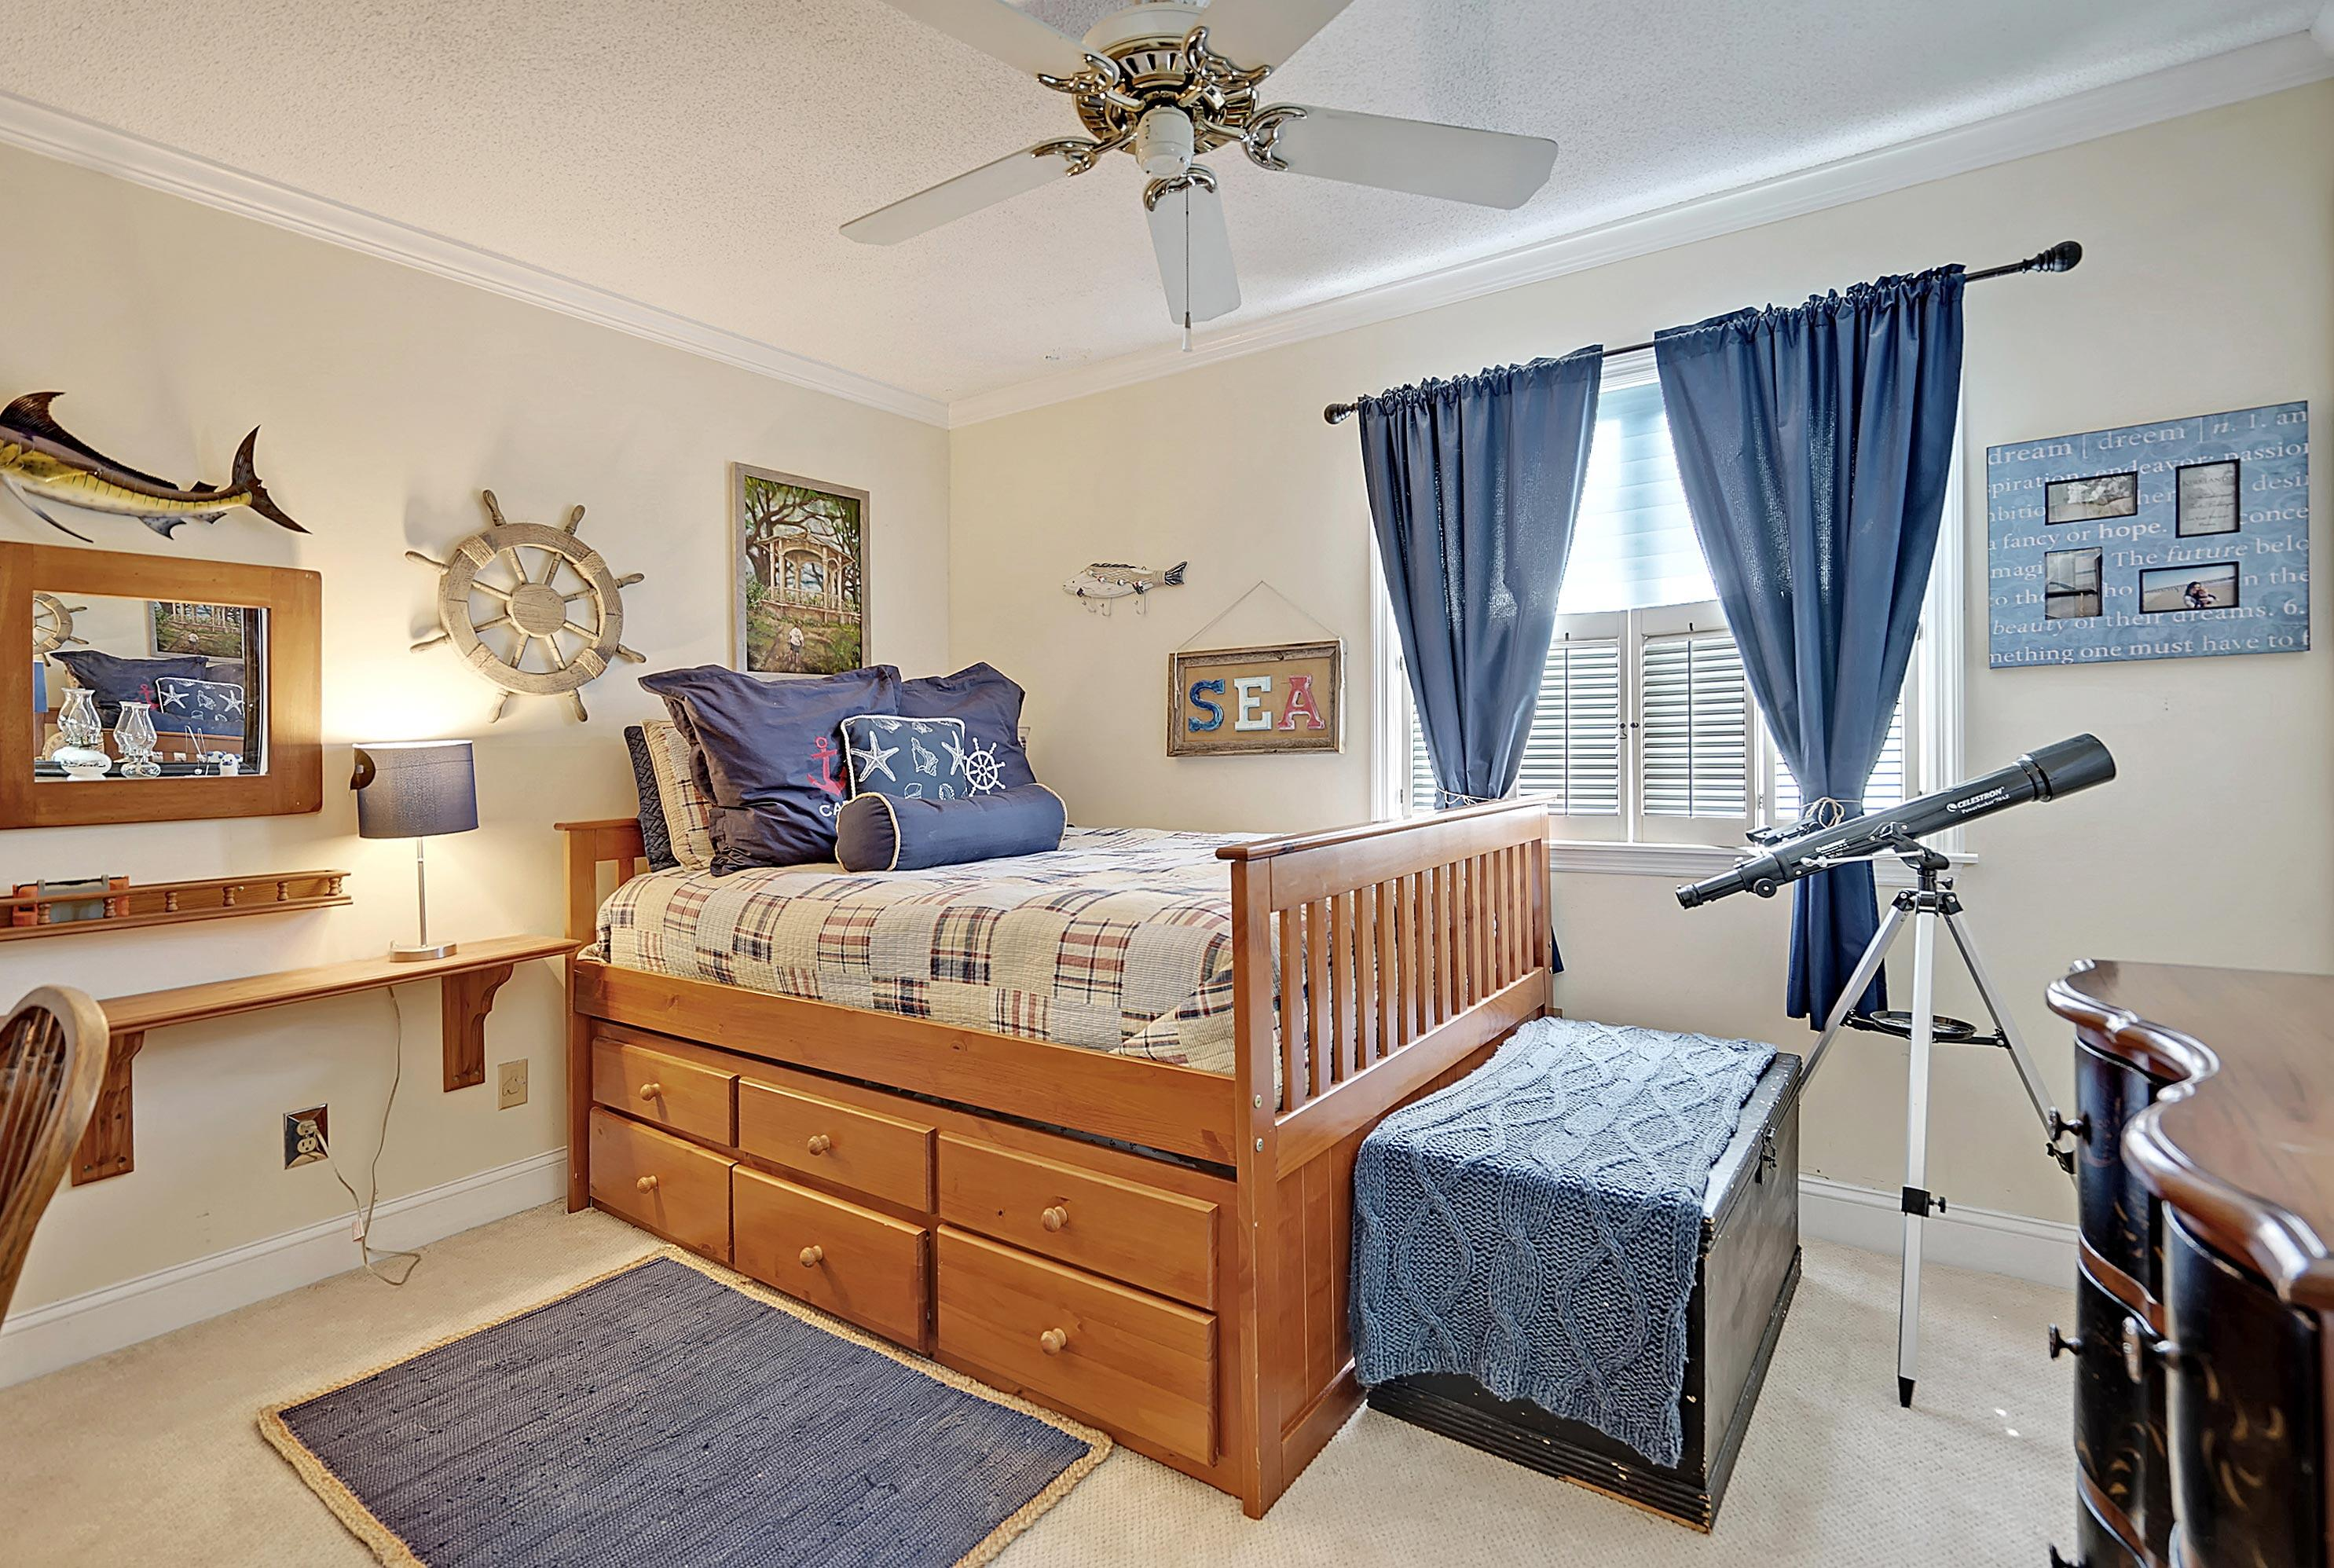 Mariners Cay Homes For Sale - 63 Mariners Cay, Folly Beach, SC - 24